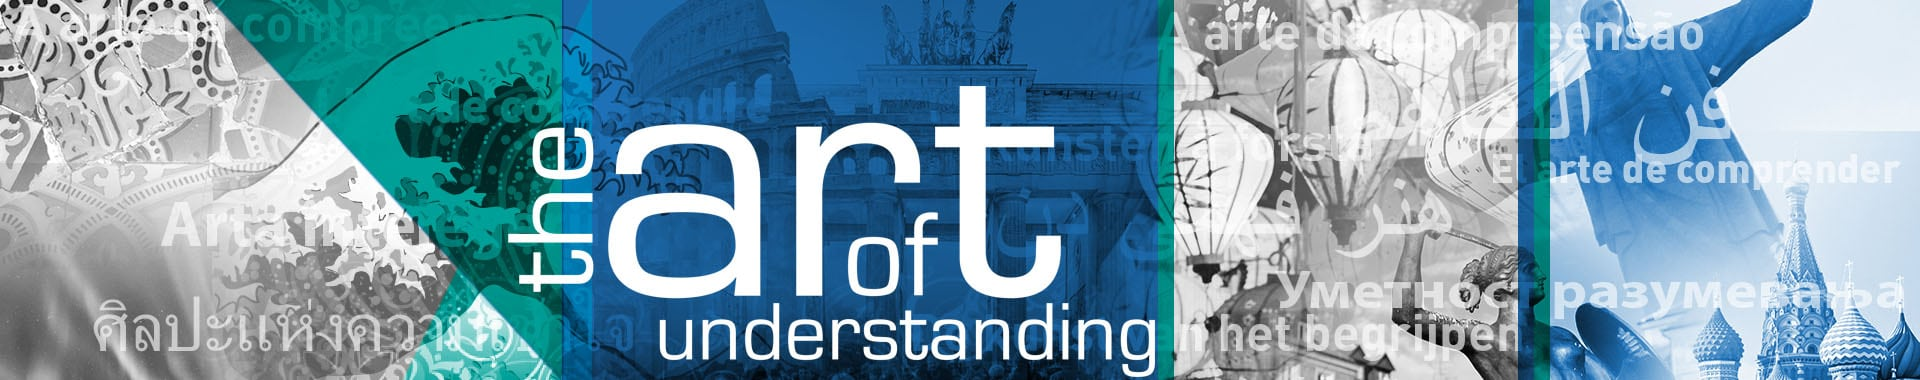 the art of understanding | eubylon GmbH